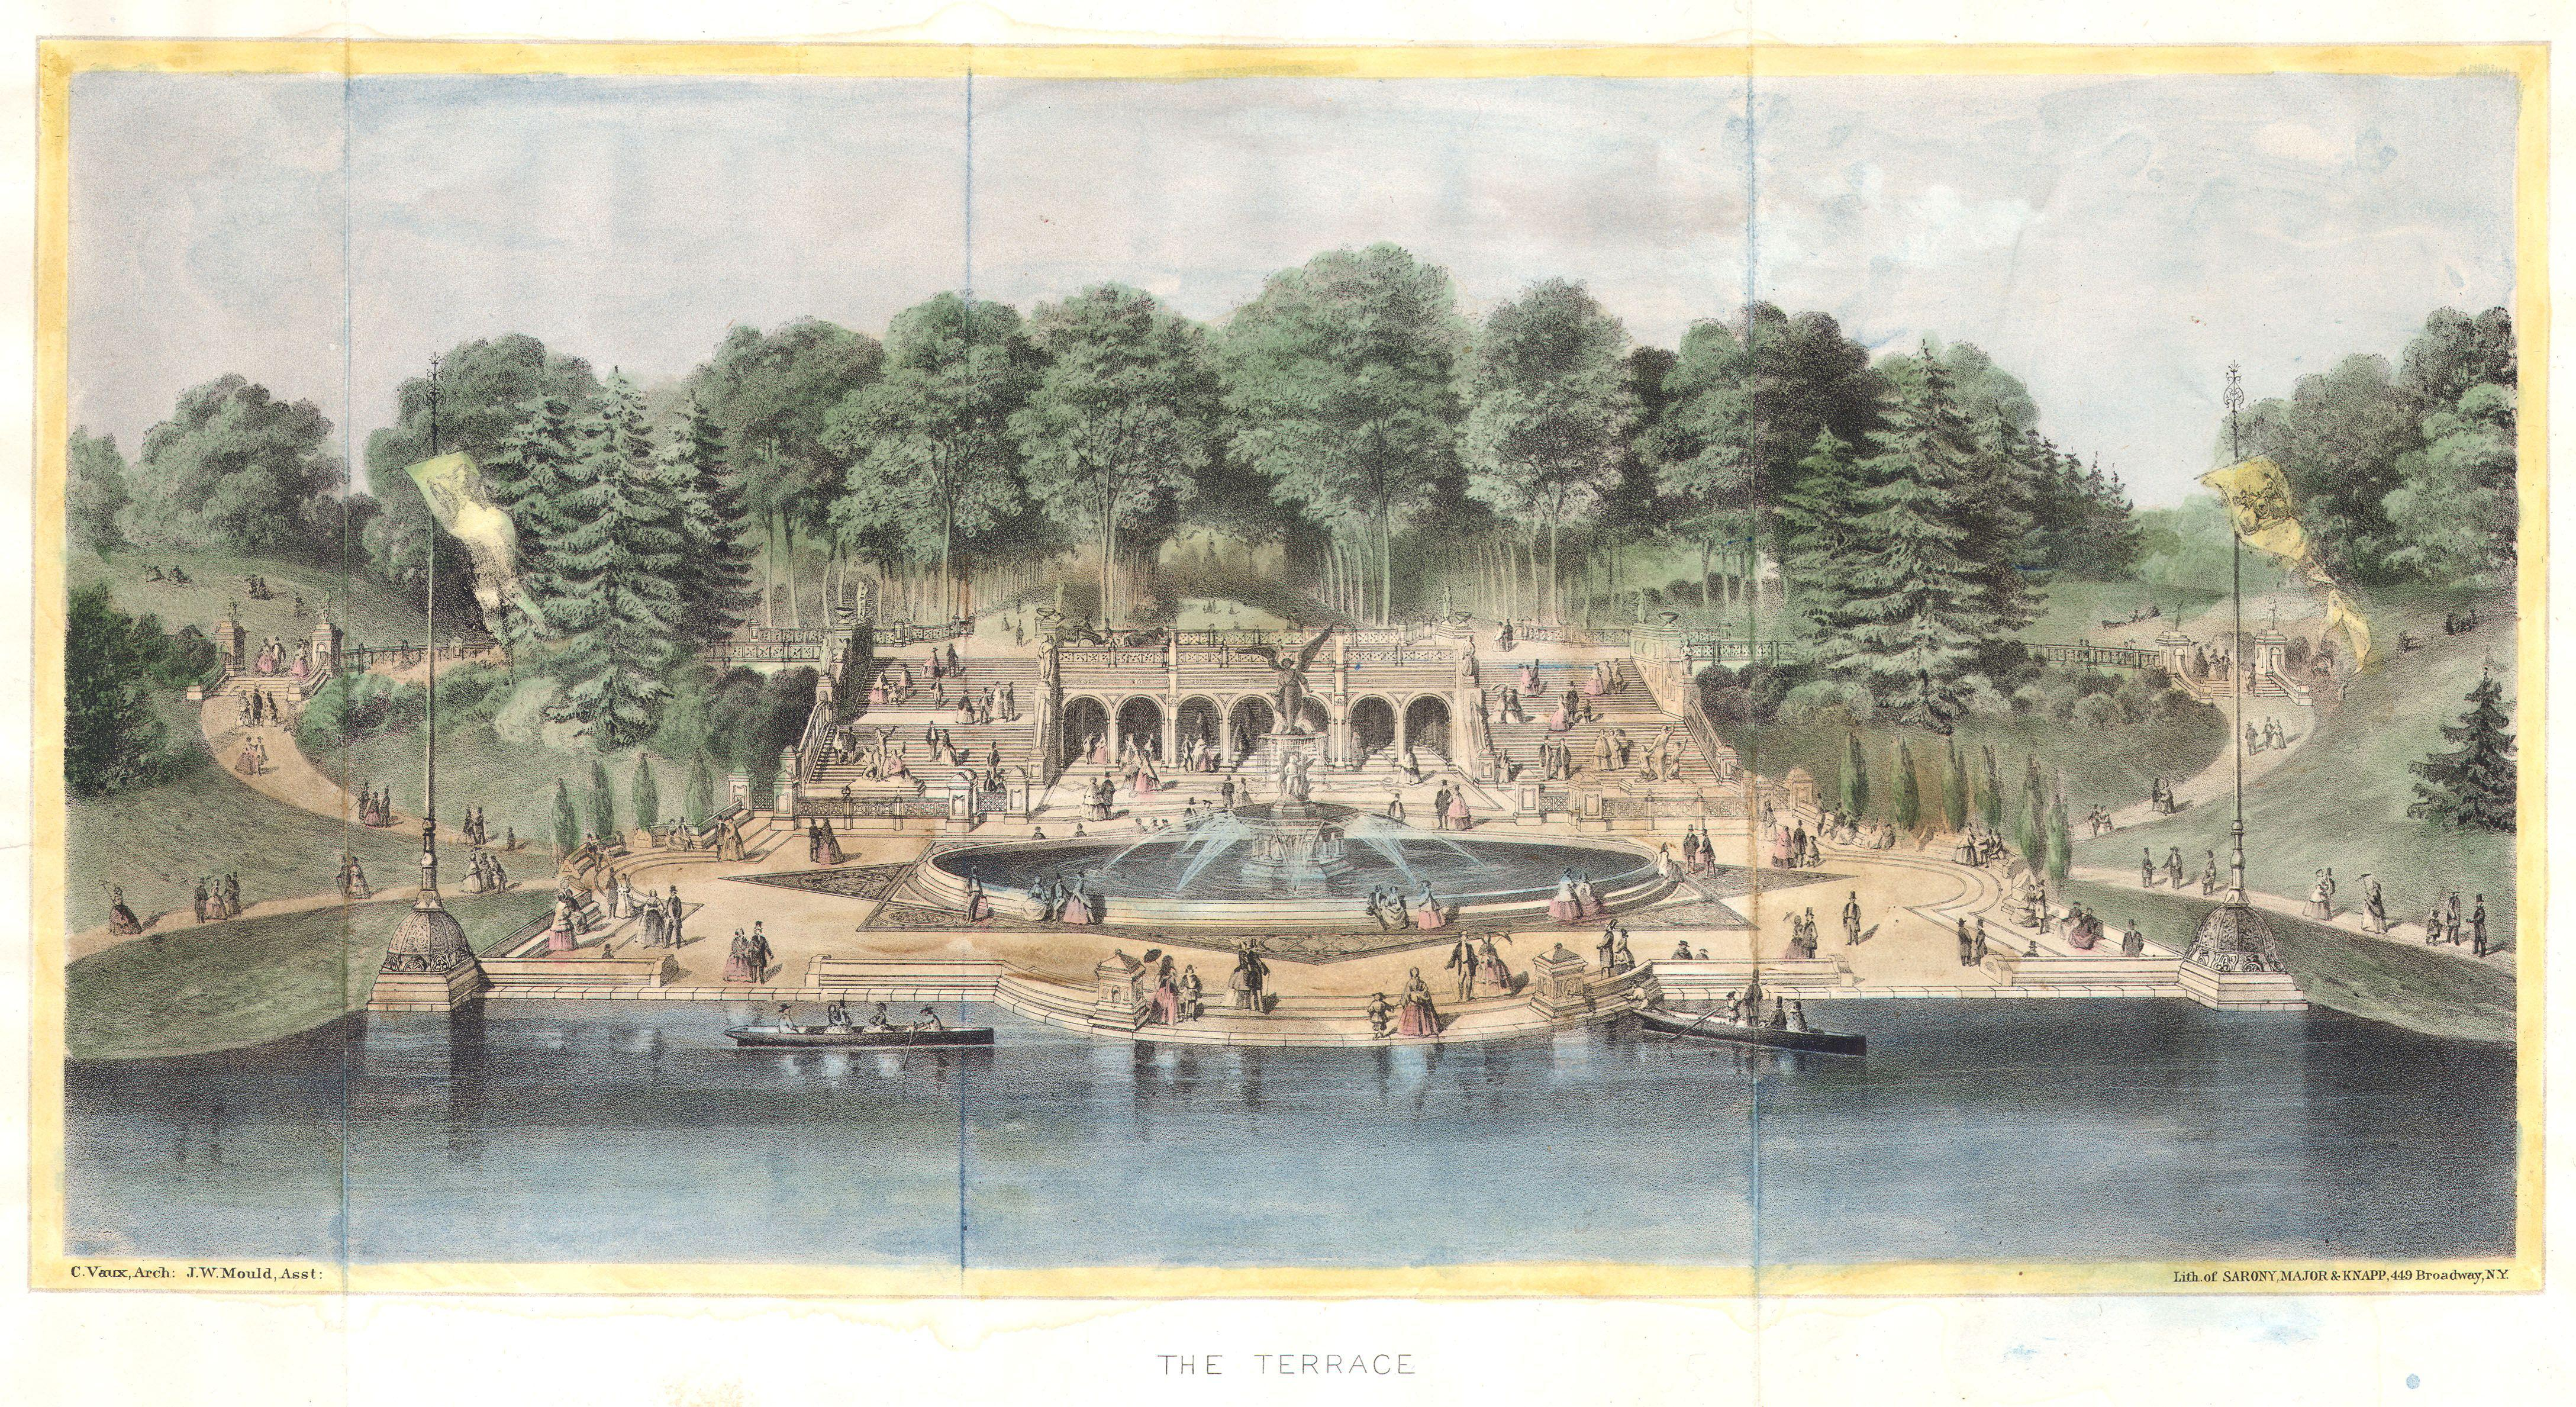 1869_Knapp_View_of_Bethesda_Terrace,_Central_Park,_New_York_City_-_Geographicus_-_Terrace-centralpark-1868